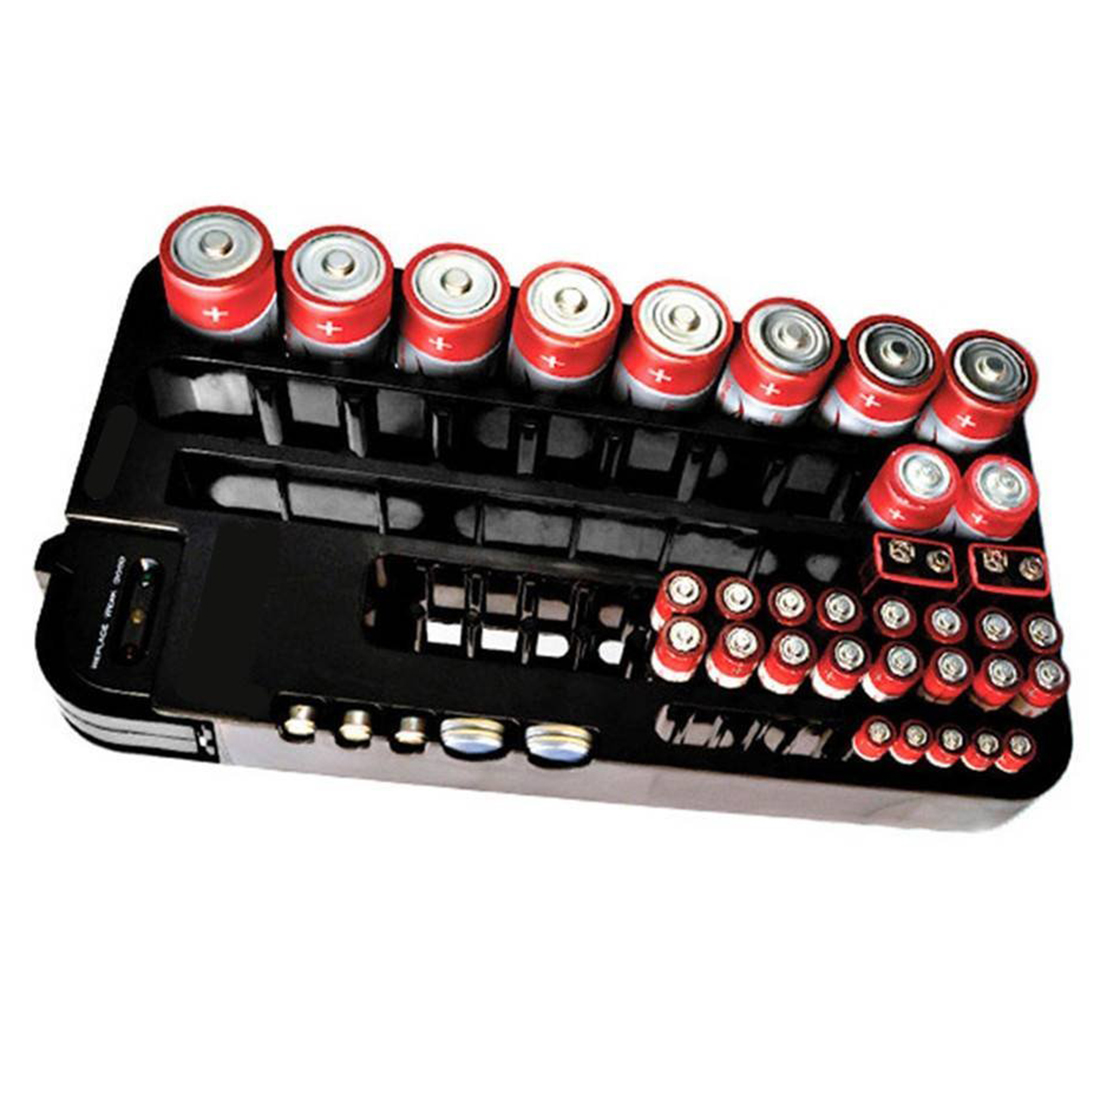 JFBL Hot 72 Battery Tester Case Storage Box Battery Caddy Storage Plastic Holder Slot Rack Organizer Removable Tester For AAA